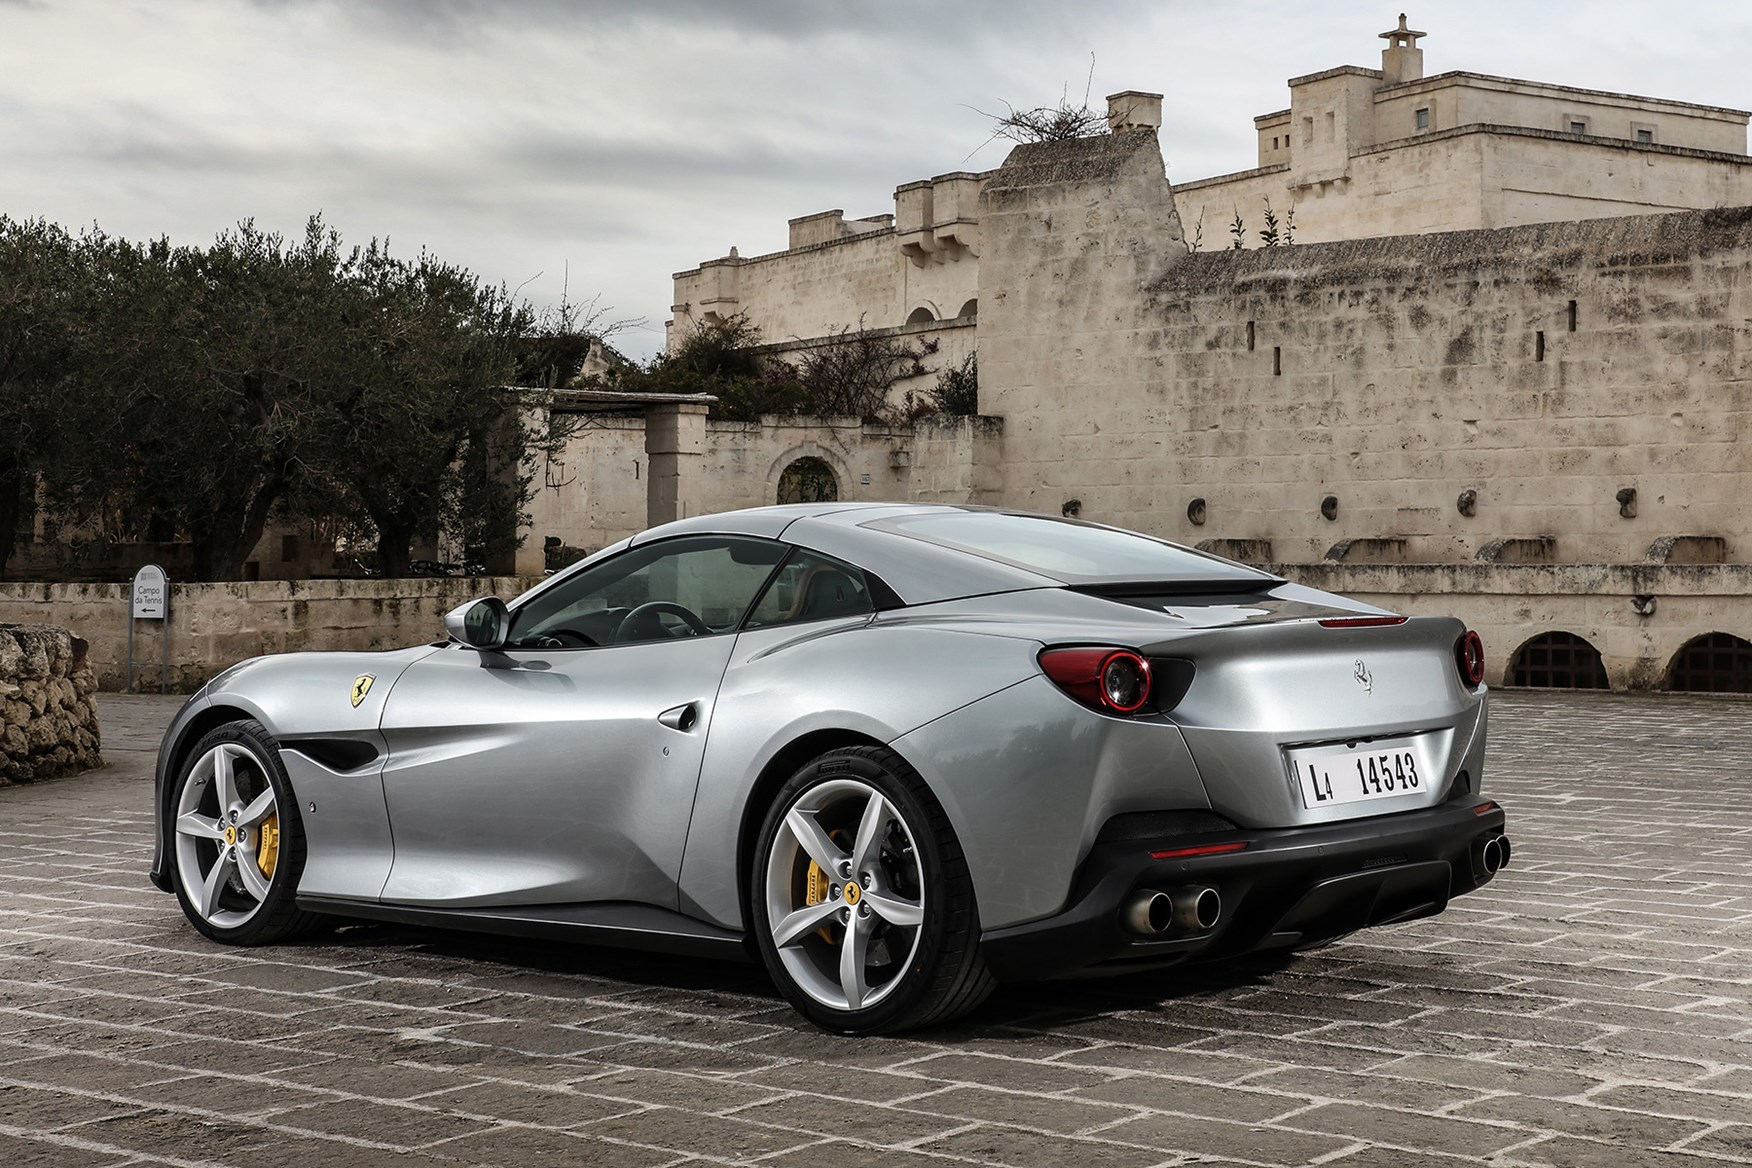 Ferrari Portofino Review: Summary